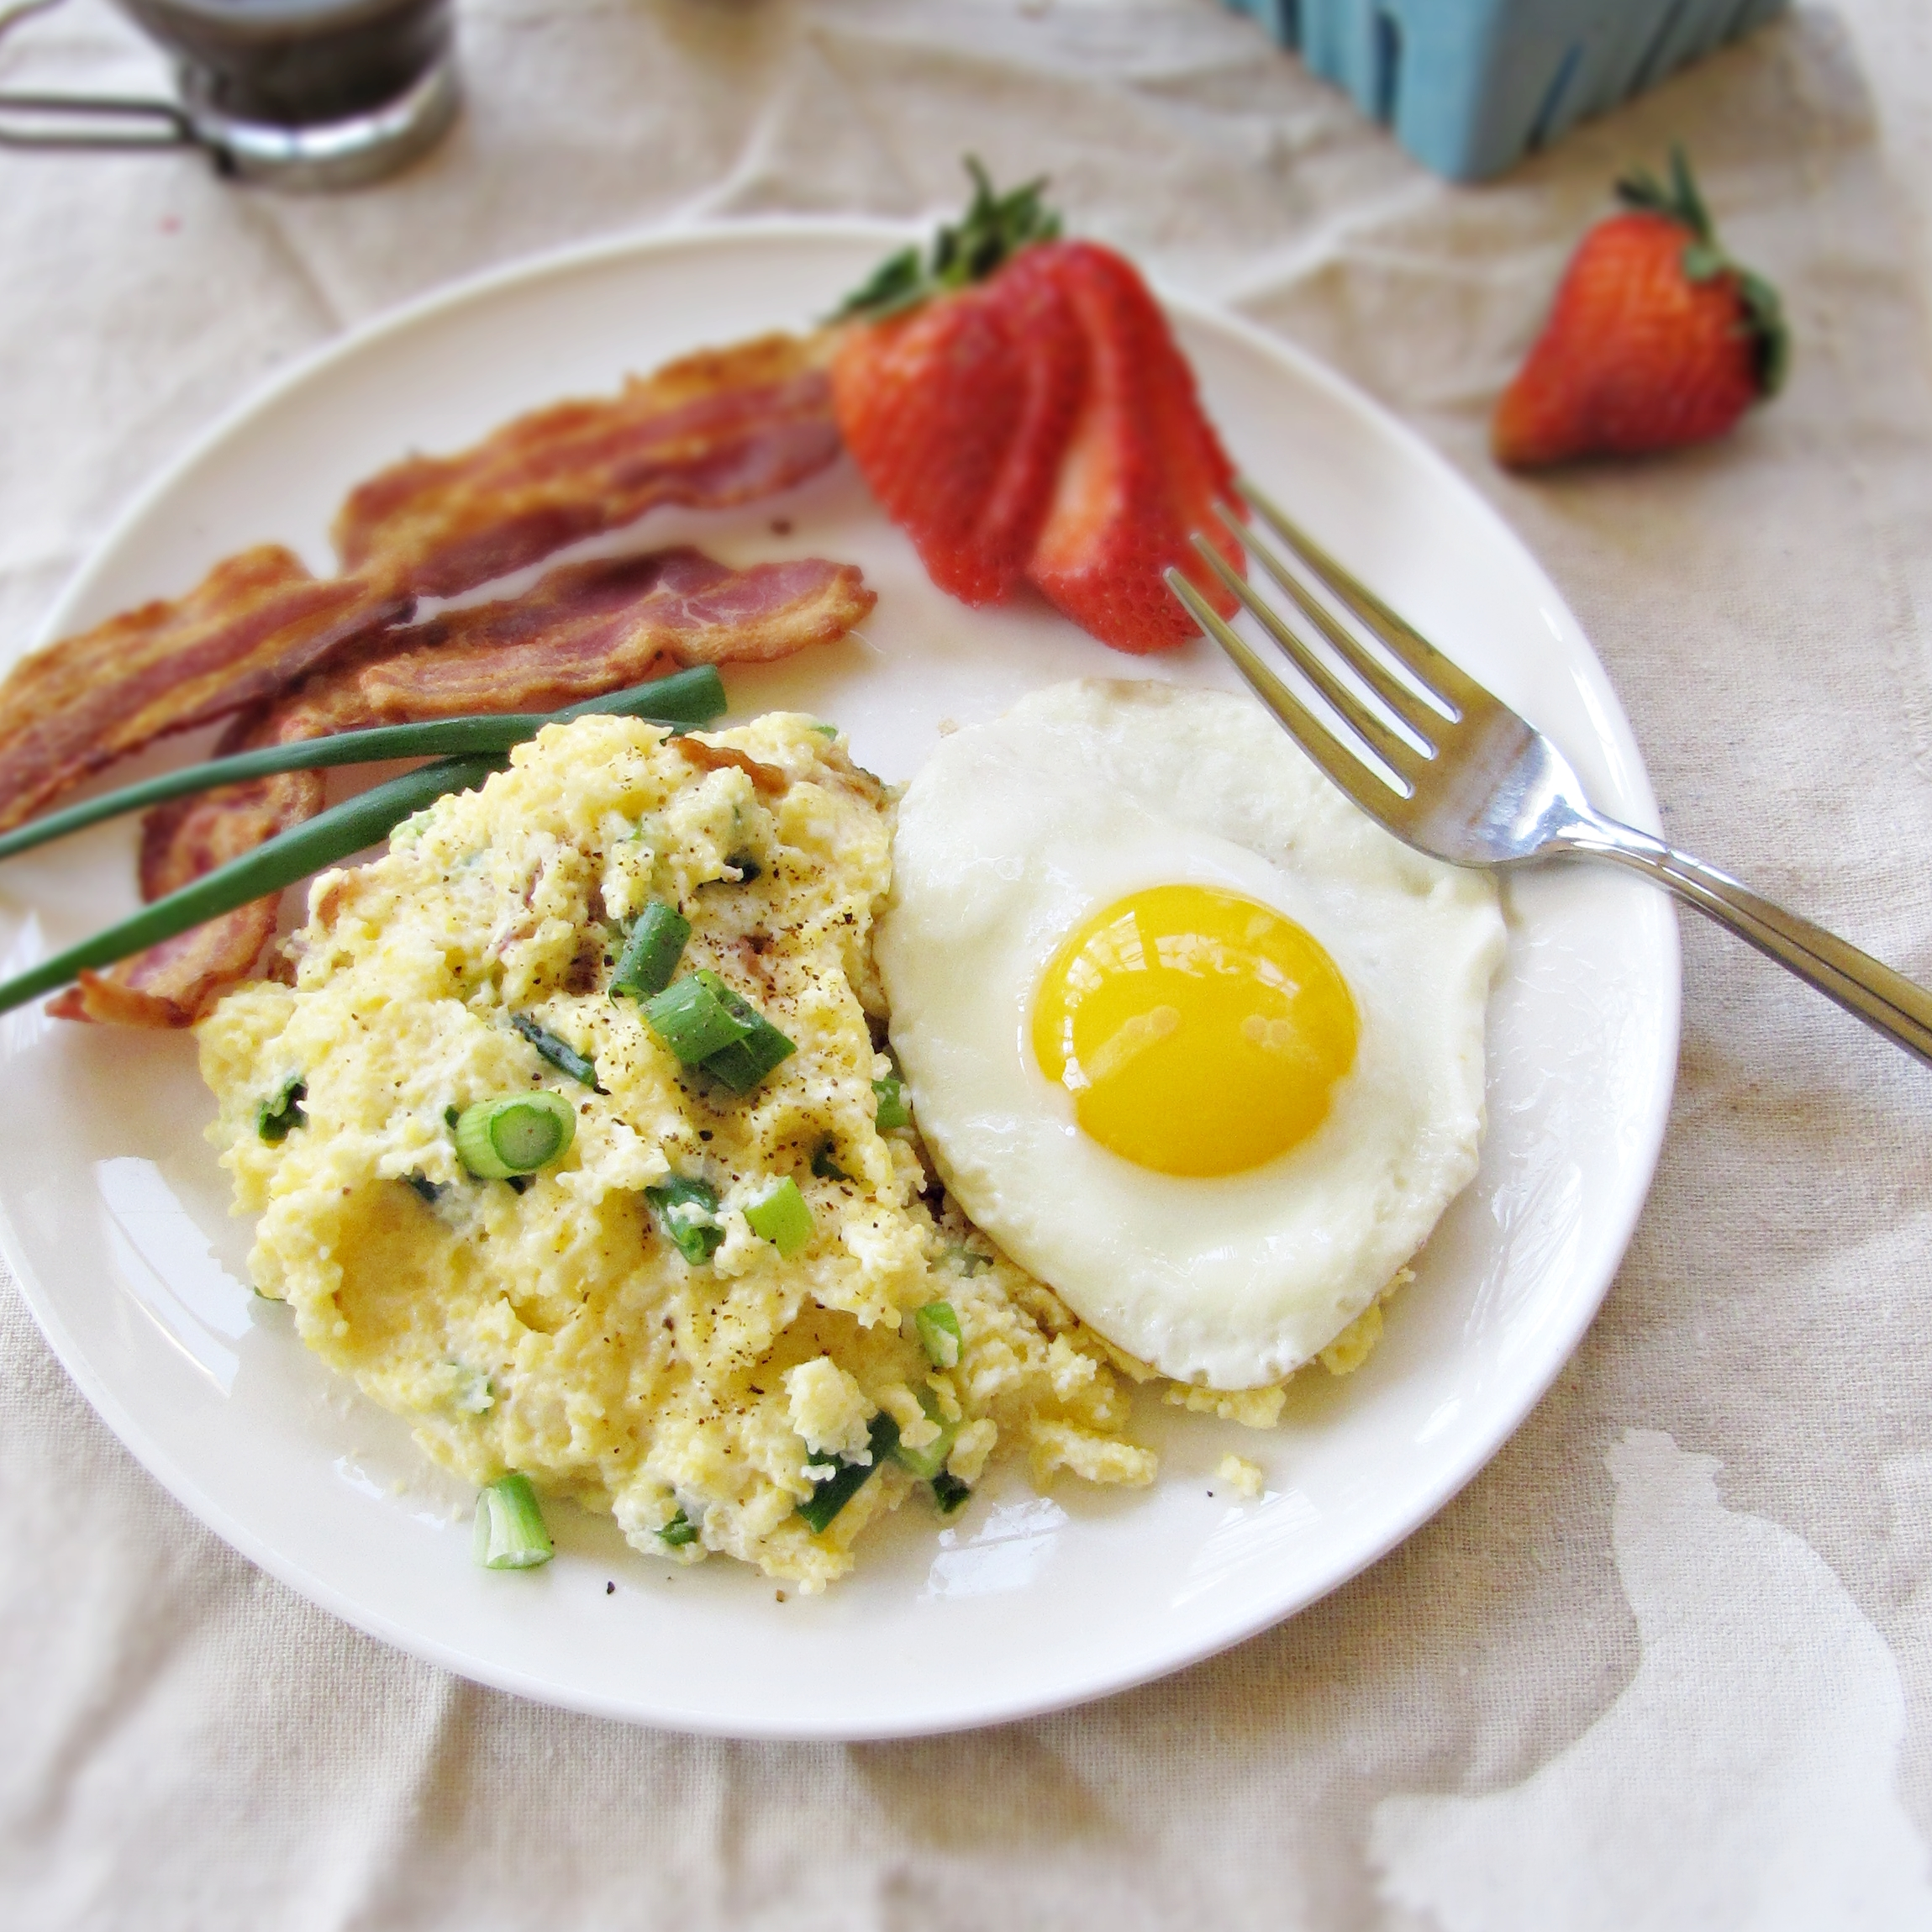 Grits and bacon, anyone?